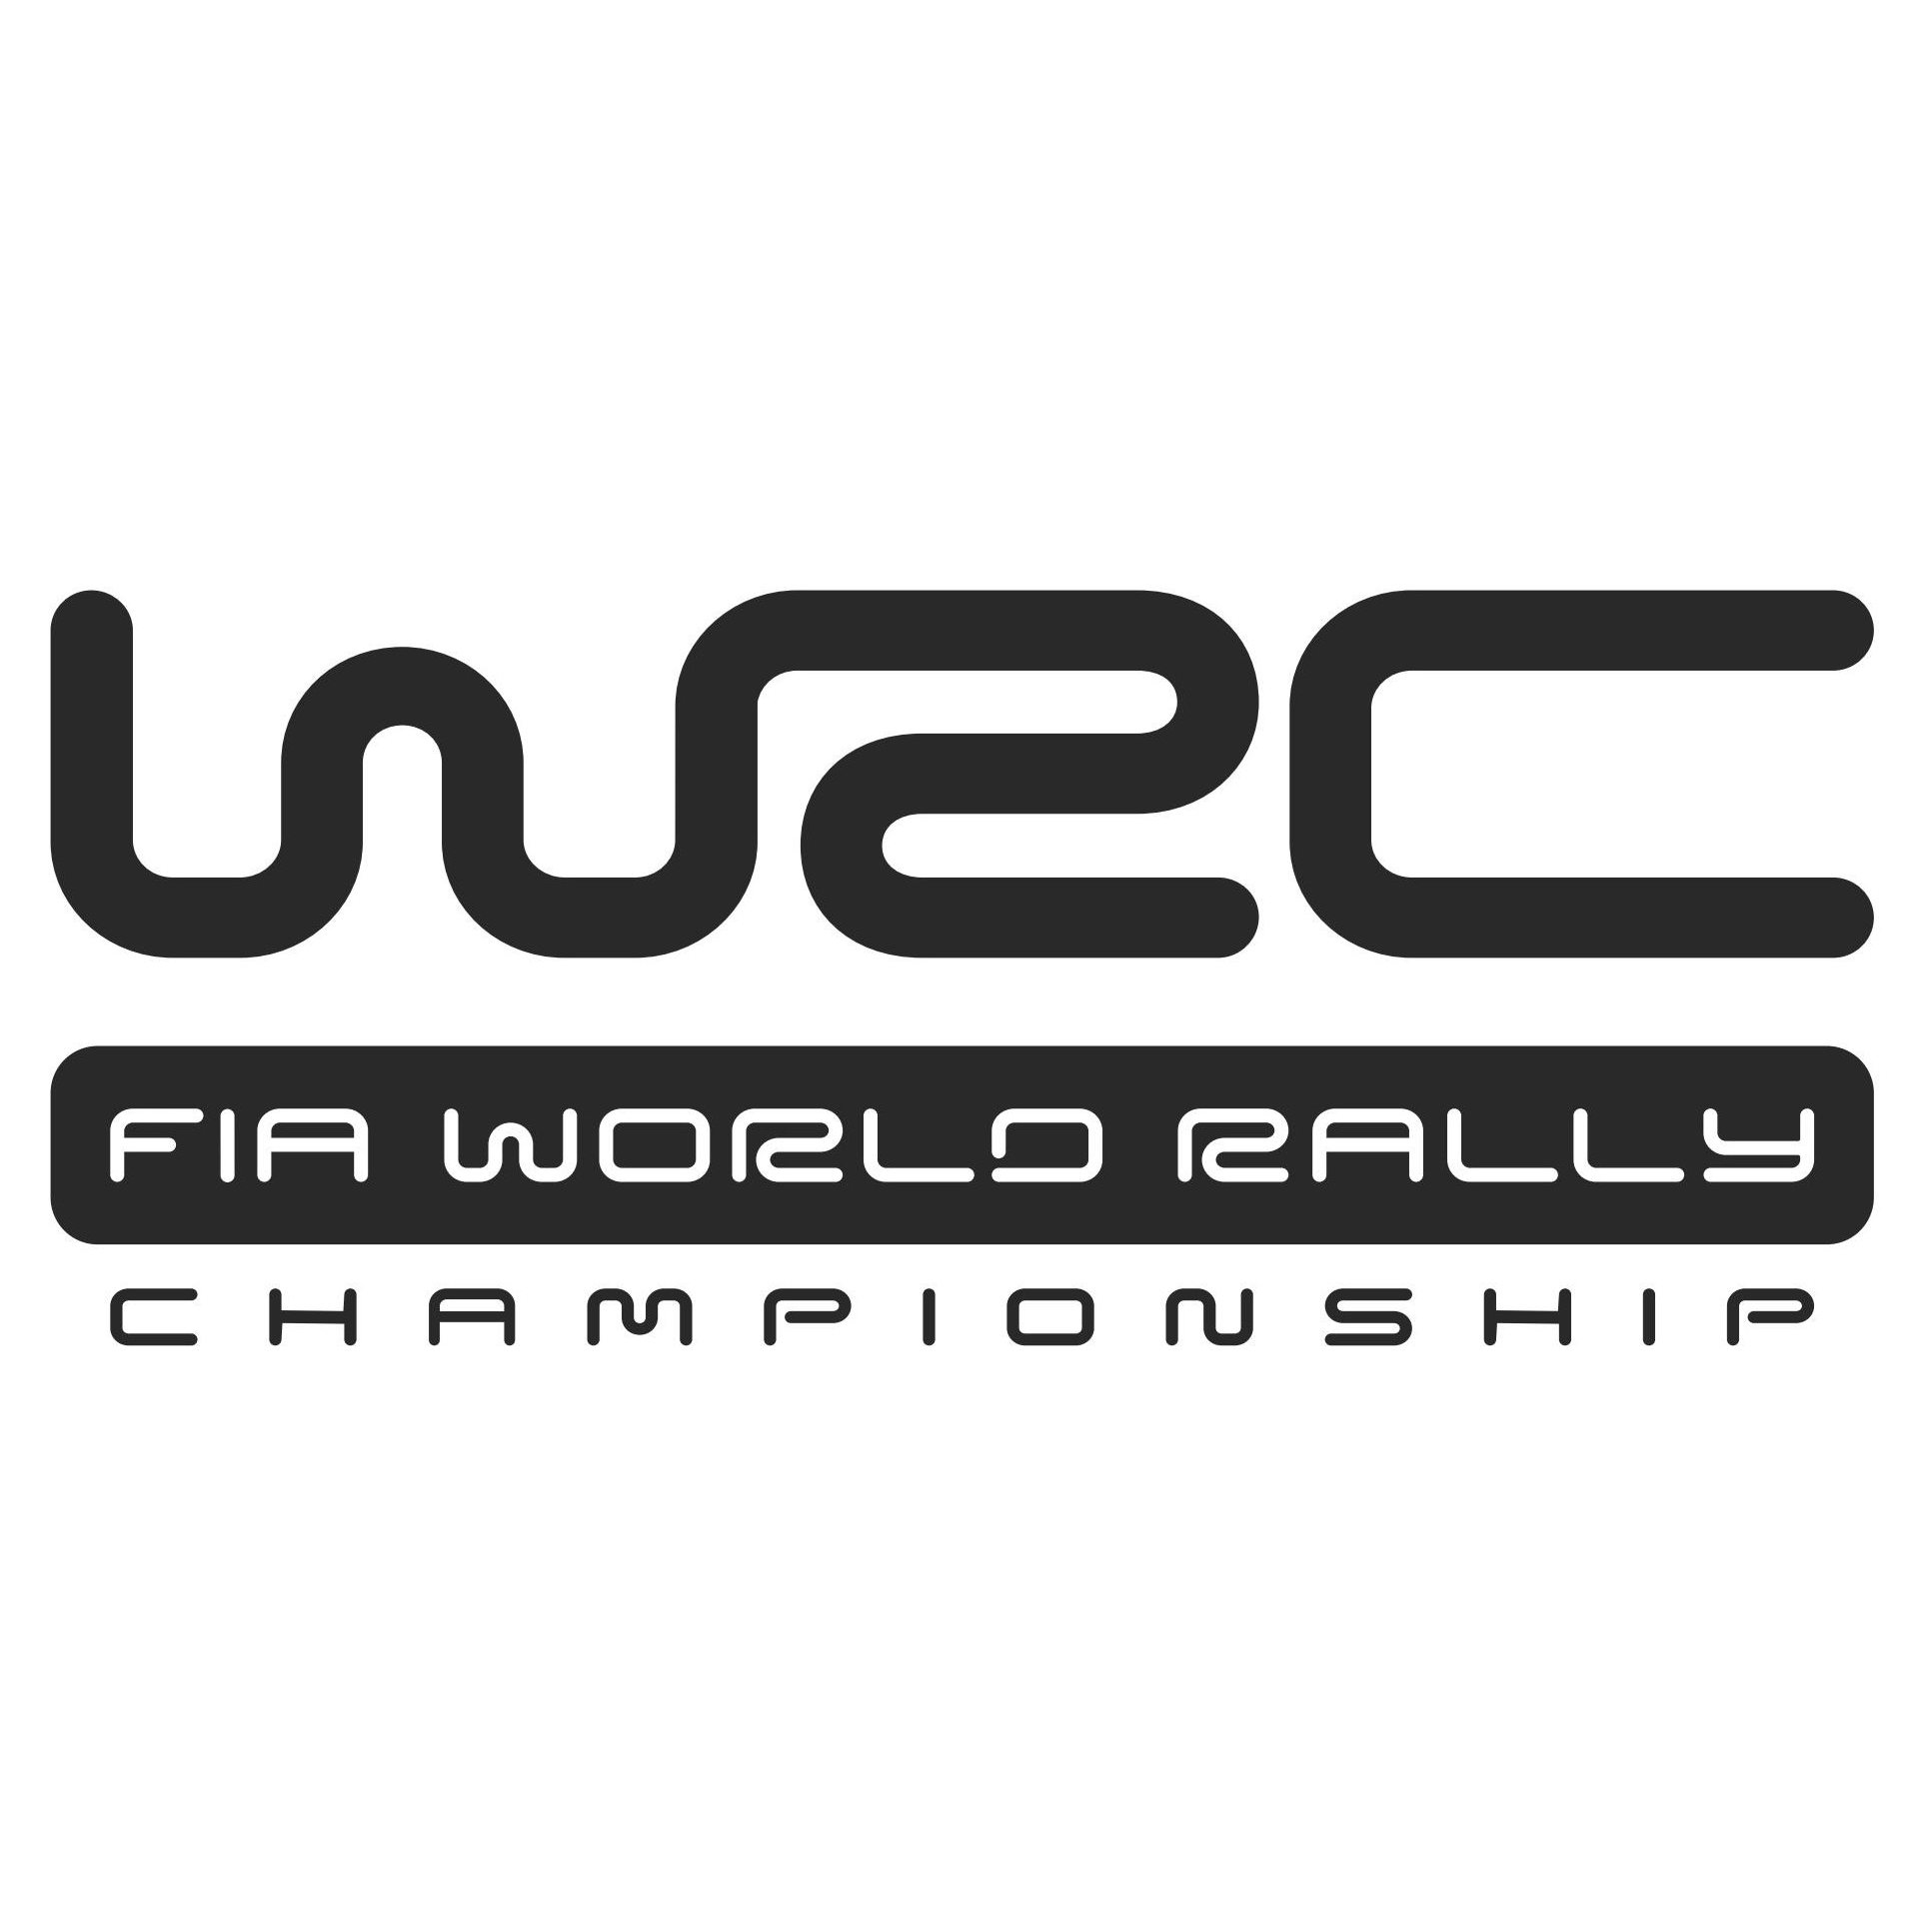 2018 World Rally Championship